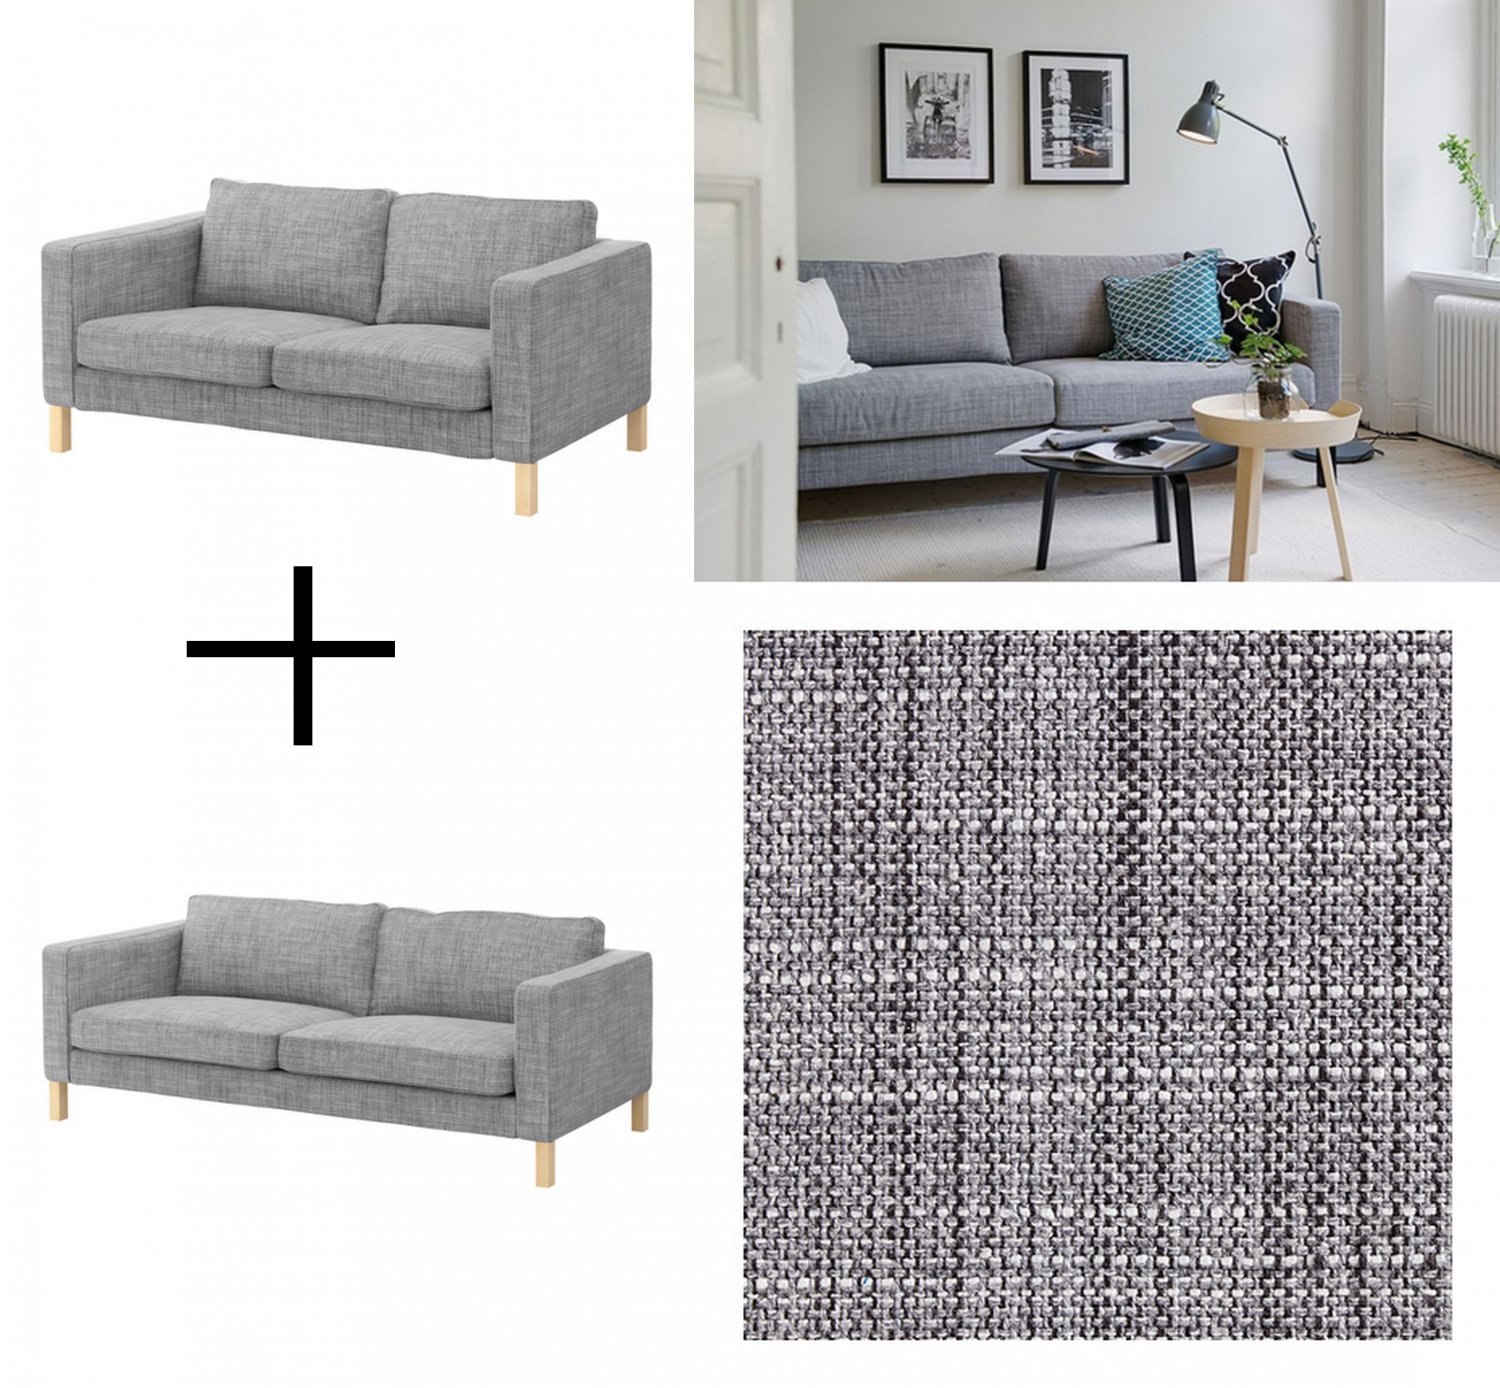 IKEA KARLSTAD Sofa and Loveseat SLIPCOVER Cover ISUNDA GRAY Grey